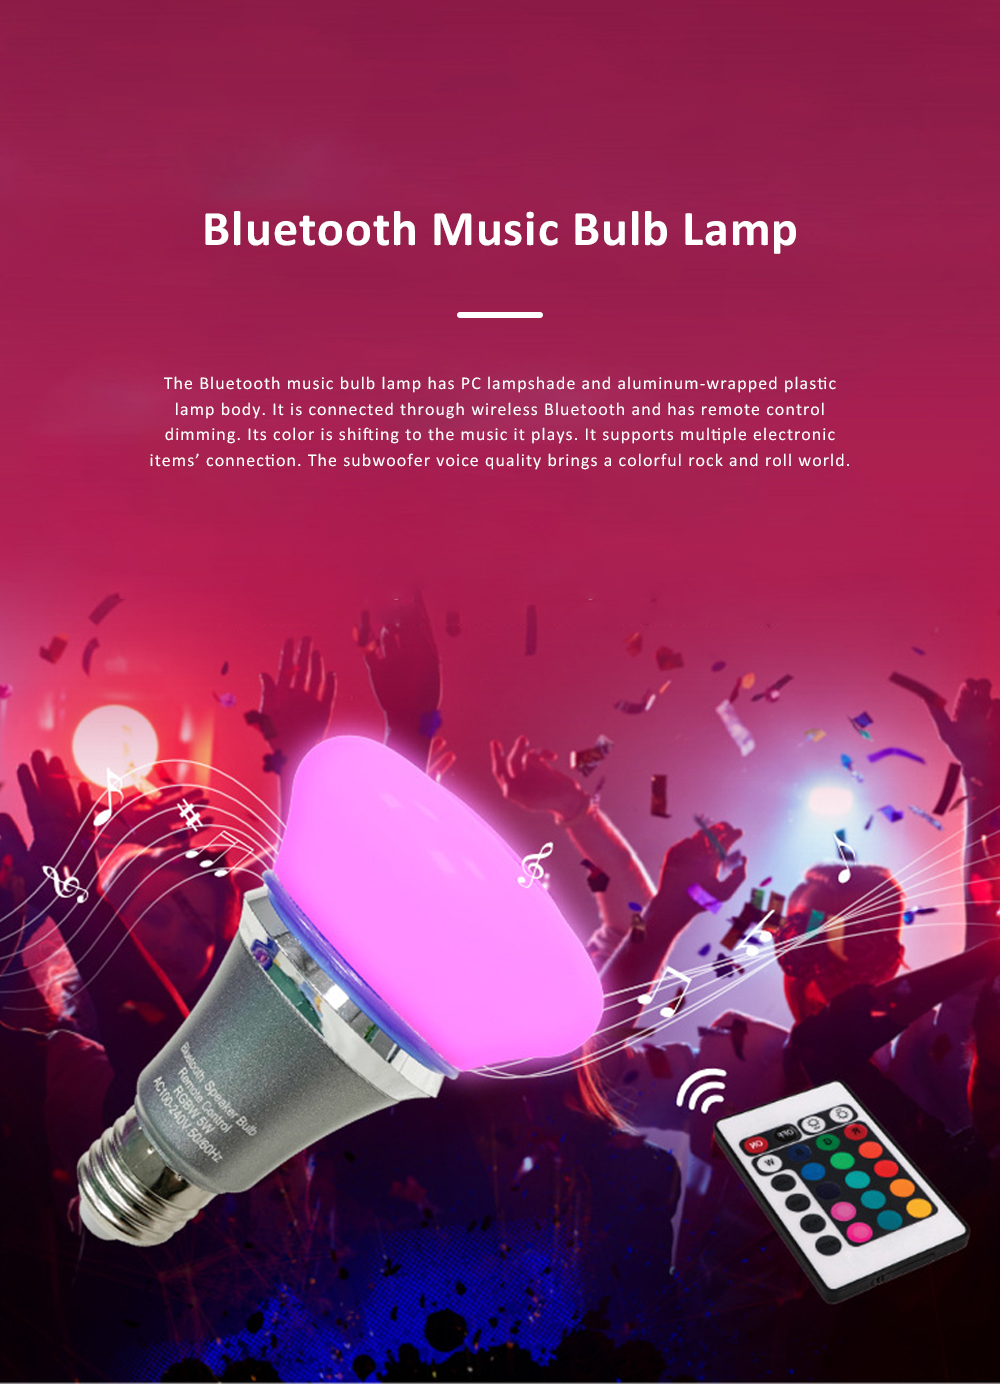 Bluetooth Music Bulb Lamp for Bedroom Coffee Café Intelligent Color Shifting Music Lamp with E27 Bulb Bluetooth Remote Control Music Lamp 0